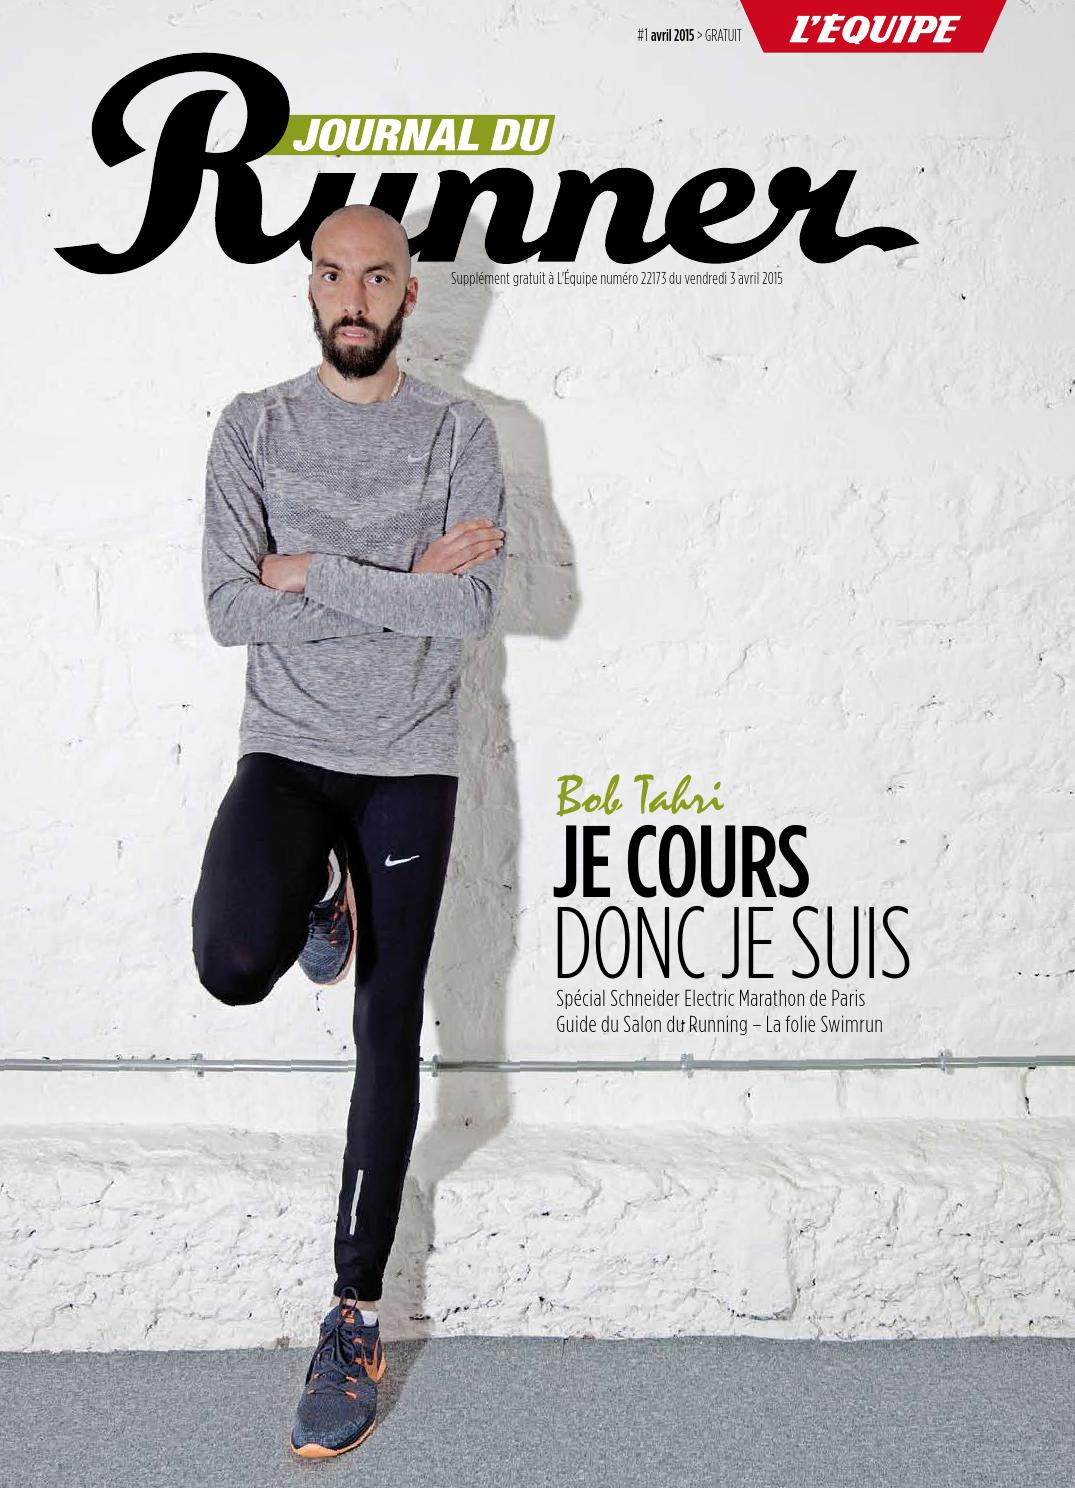 Journal du Runner n°1 by Journal du Runner - issuu 3b0788fc257